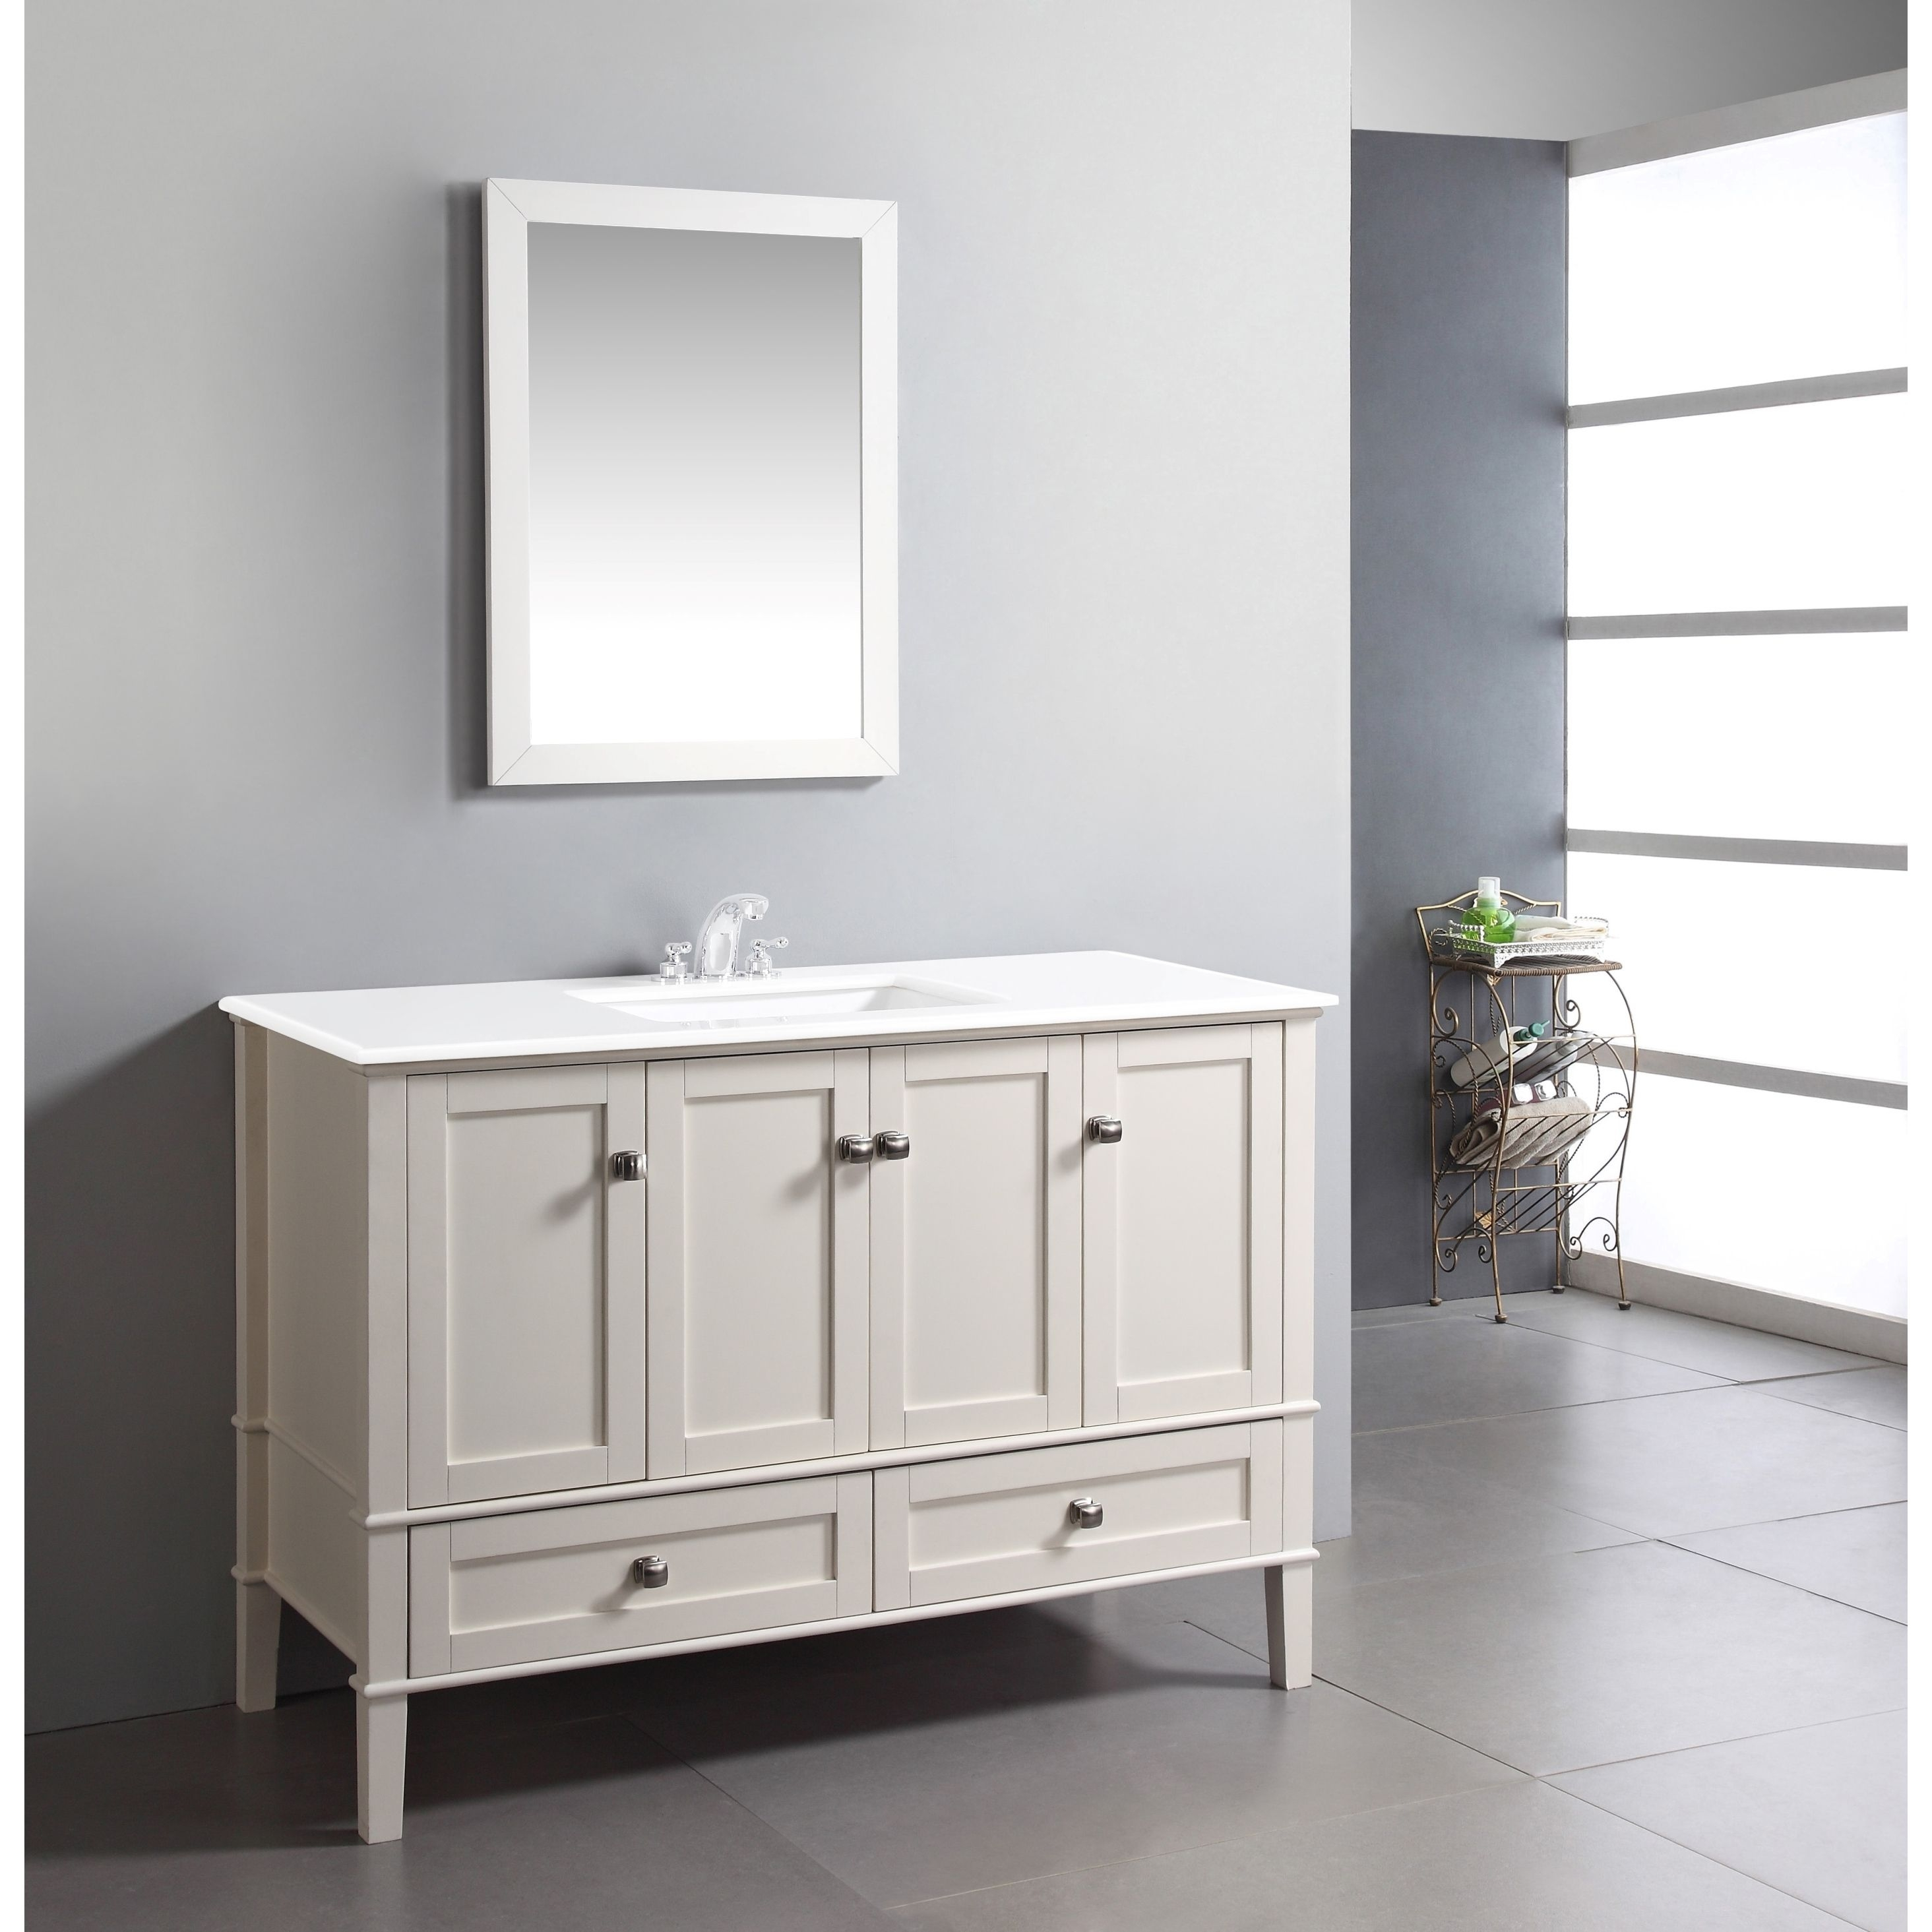 The 48 Inch Windham Bathroom Vanity Is Defined Its Soft White